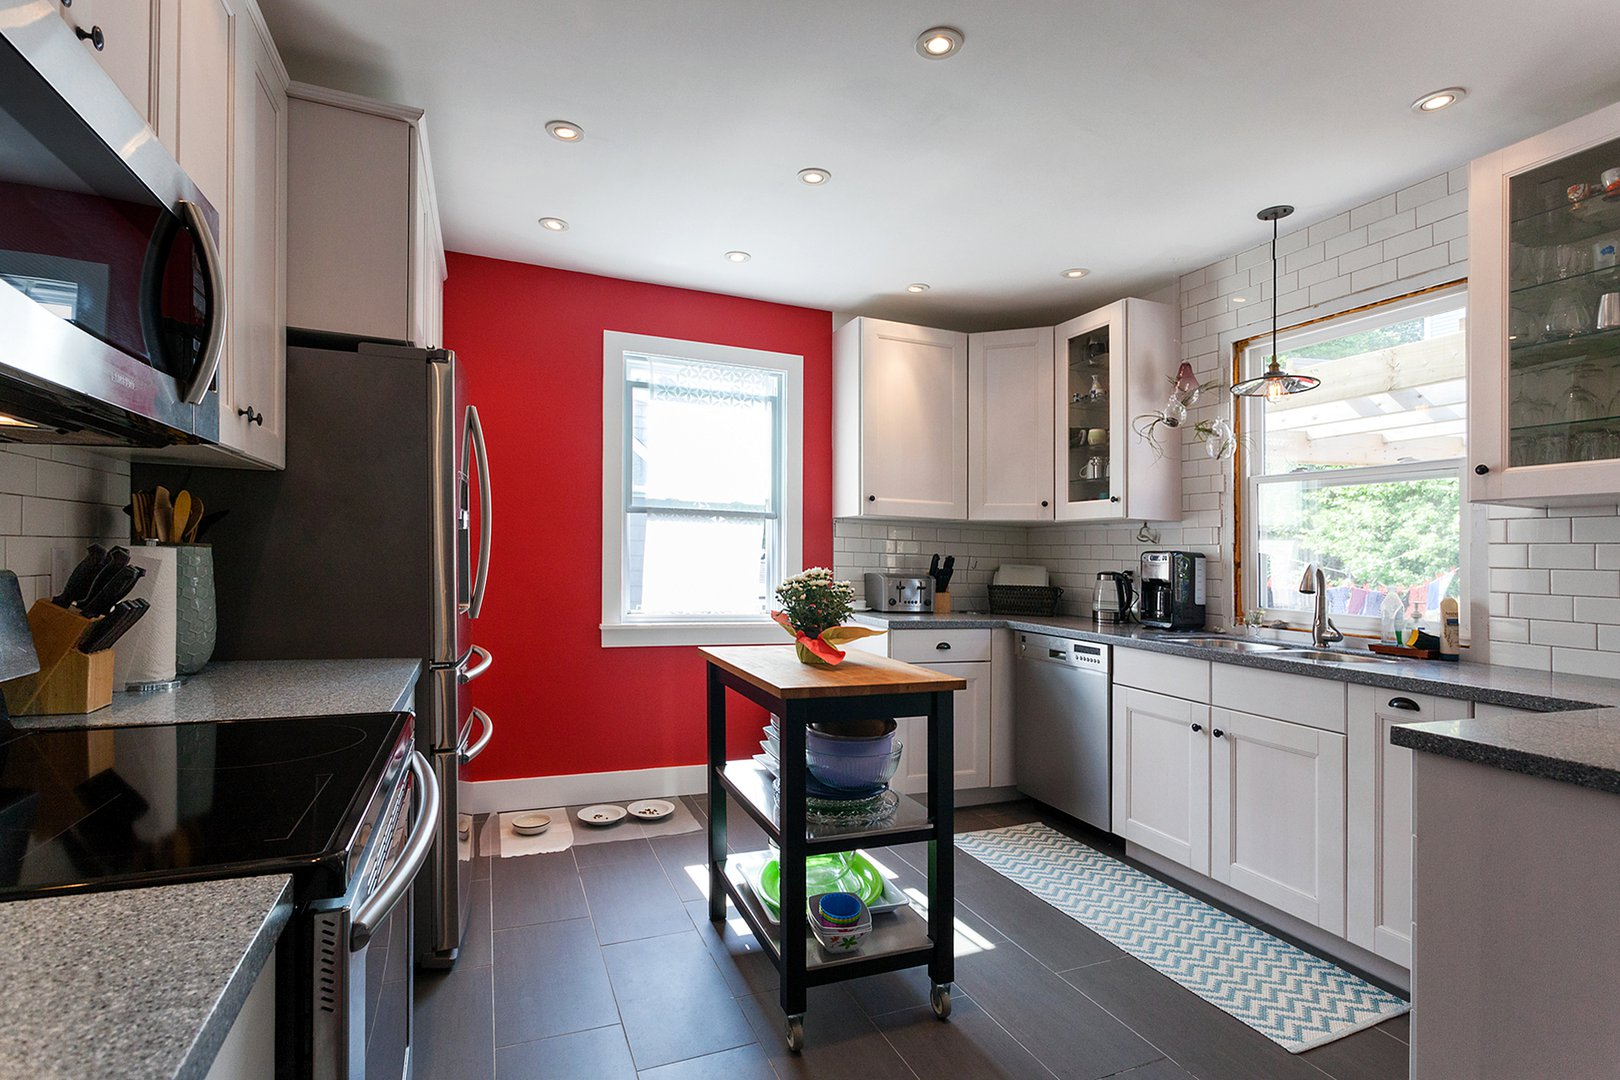 Apartment for rent at 3204 Veith St, Halifax, NS. This is the kitchen with tile floor, stainless steel and natural light.